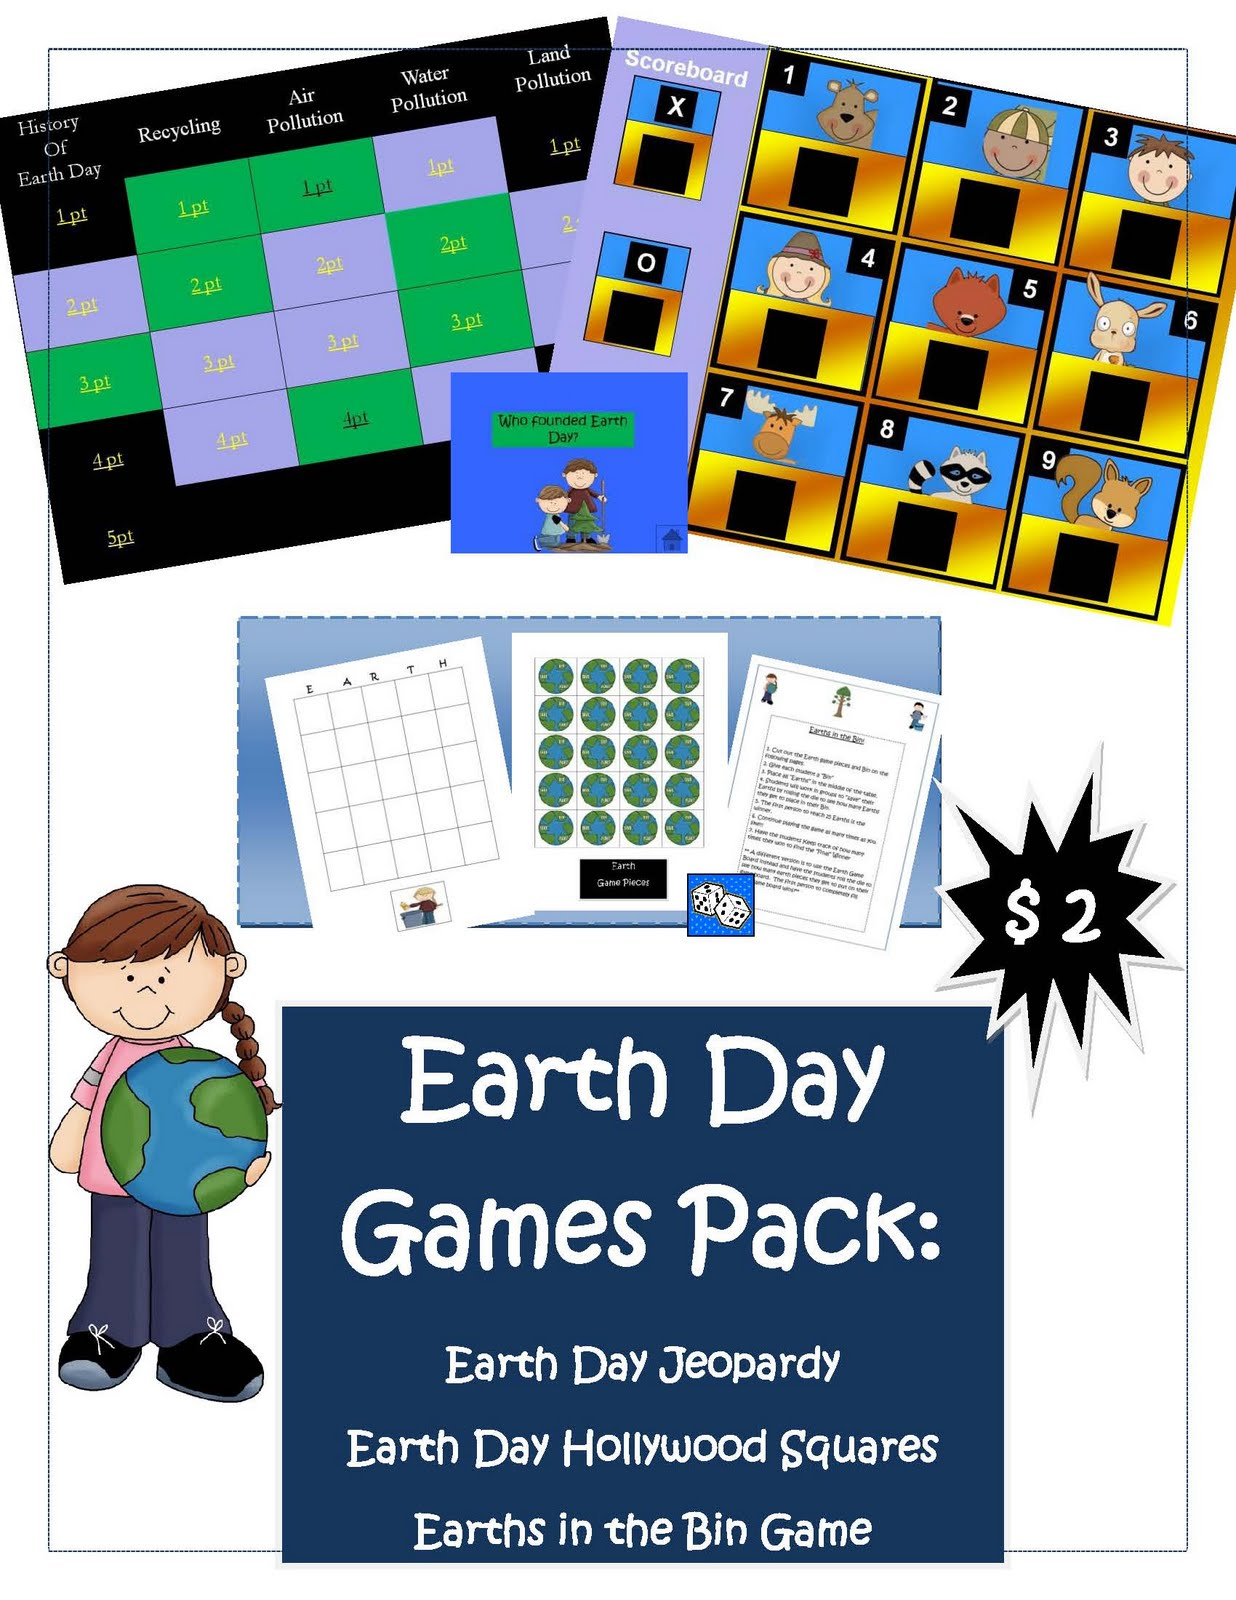 Made 4 Elementary And Made 4 Middle School Earth Day Math